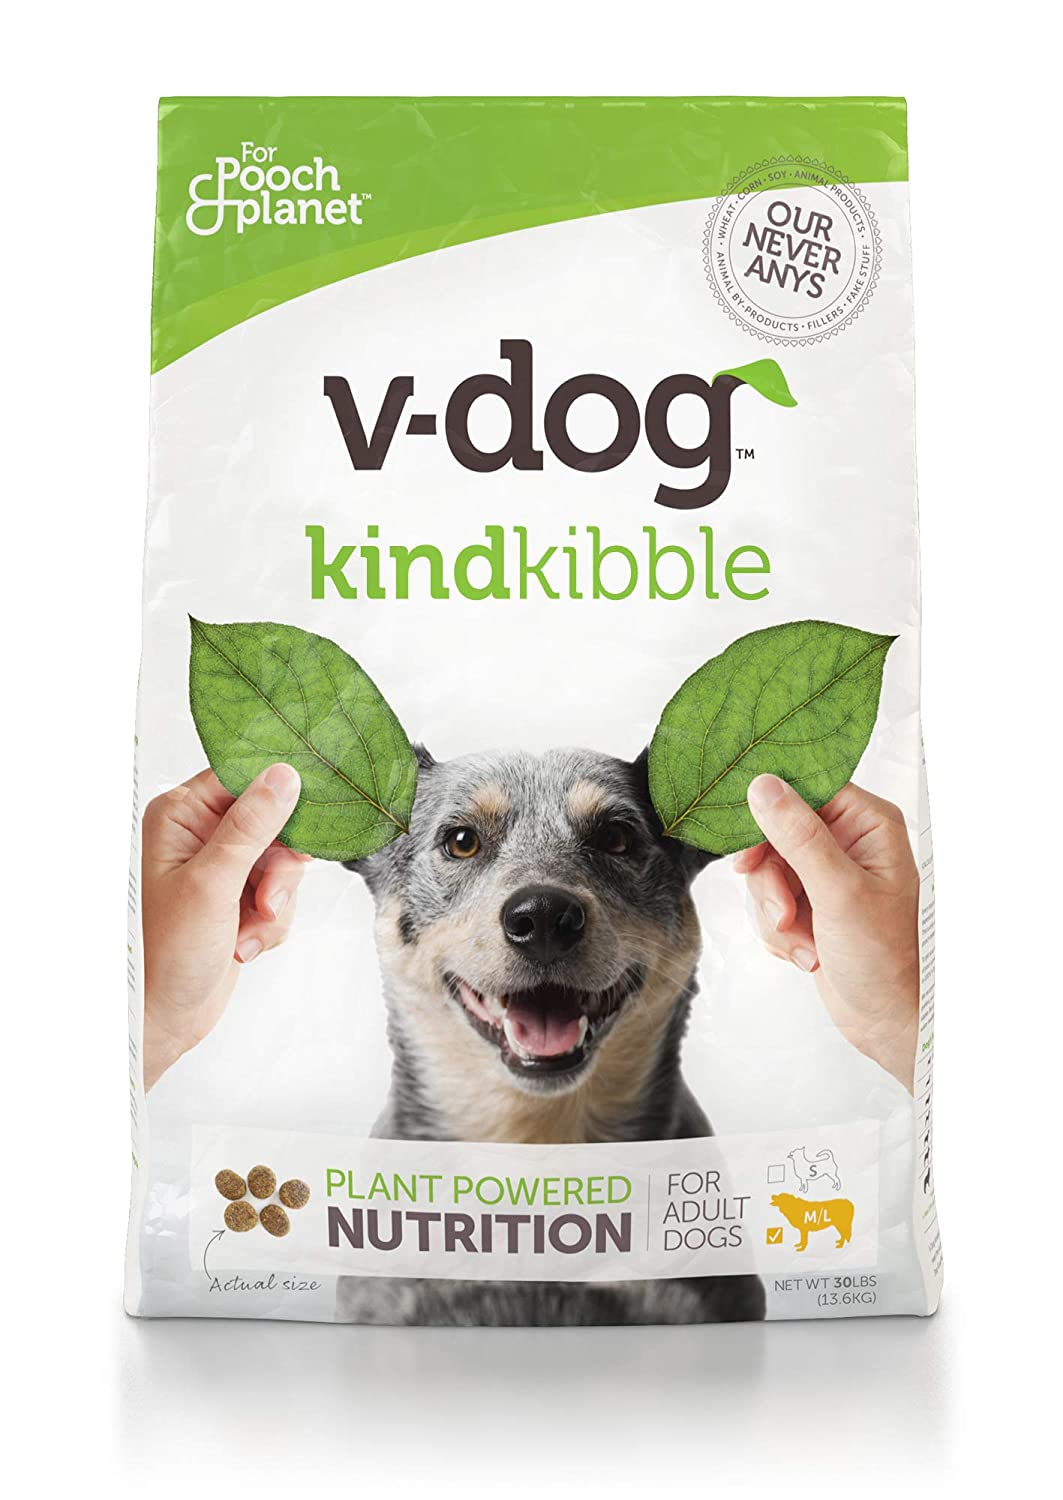 V-dog Kind Kibble Vegan Dry Dog Food